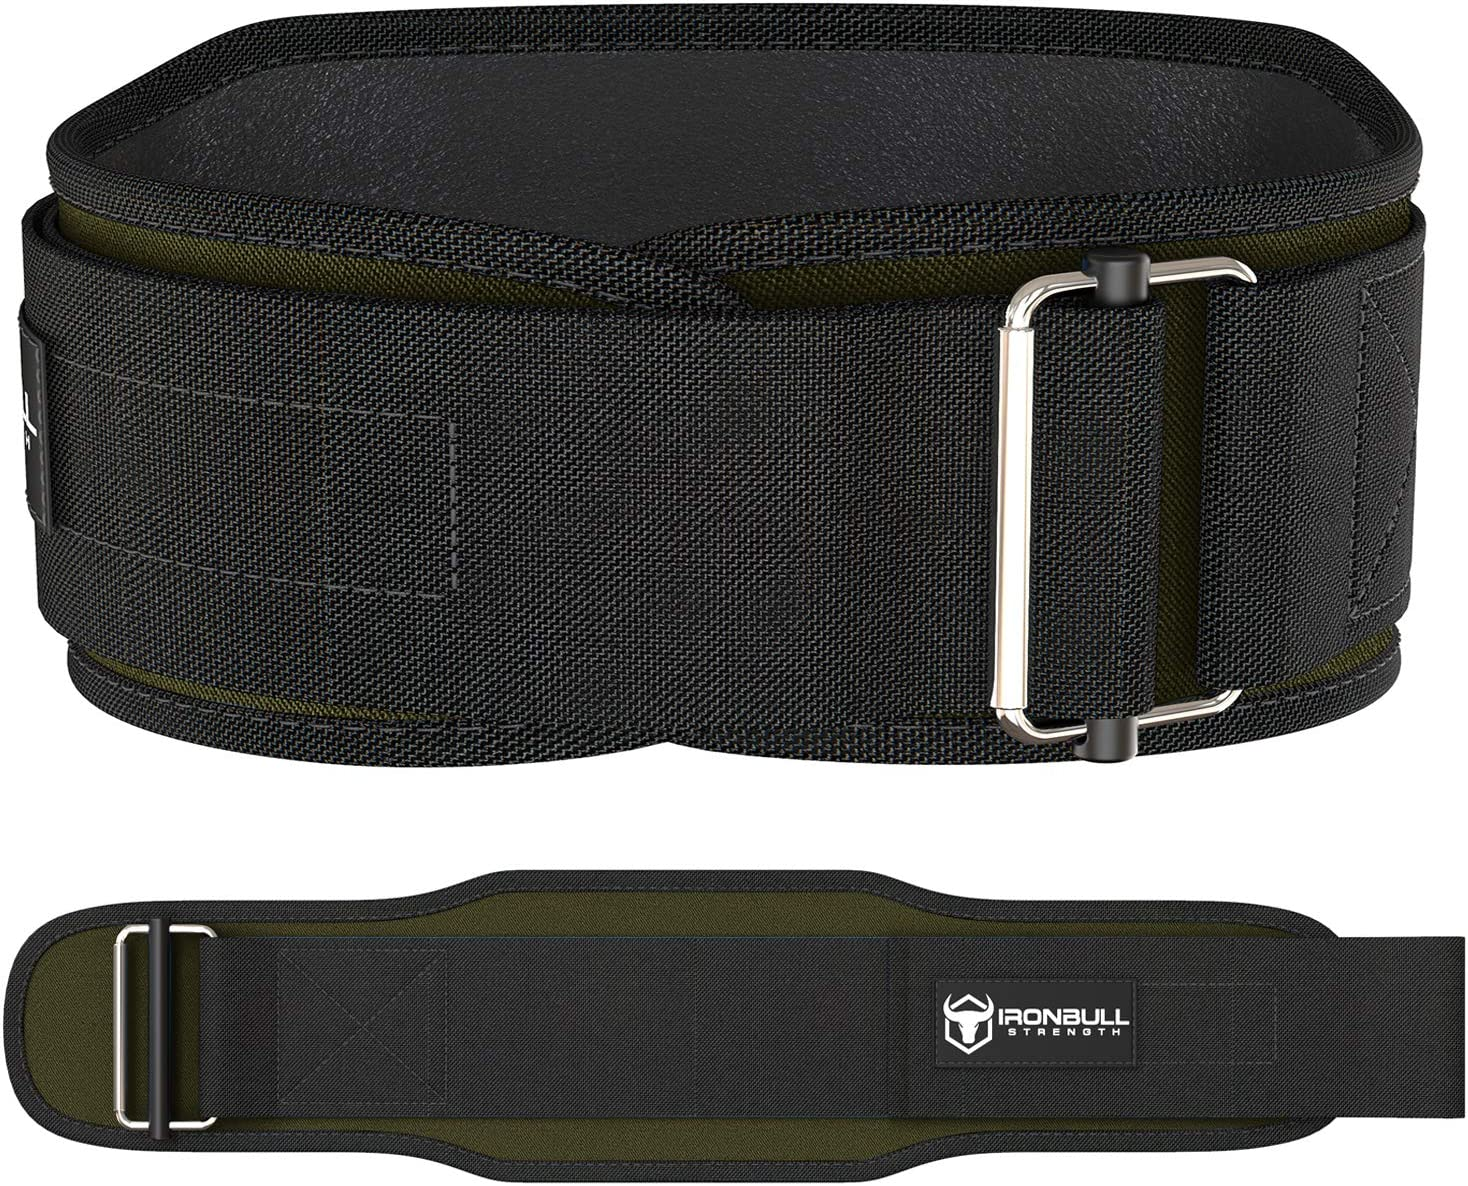 Iron Bull Strength Weight Lifting Belt for Cross Training - 5 Inch Auto-Lock Weightlifting Back Support, Workout Back Support for Lifting, Fitness and Powerlifitng - Men and Women : Sports & Outdoors